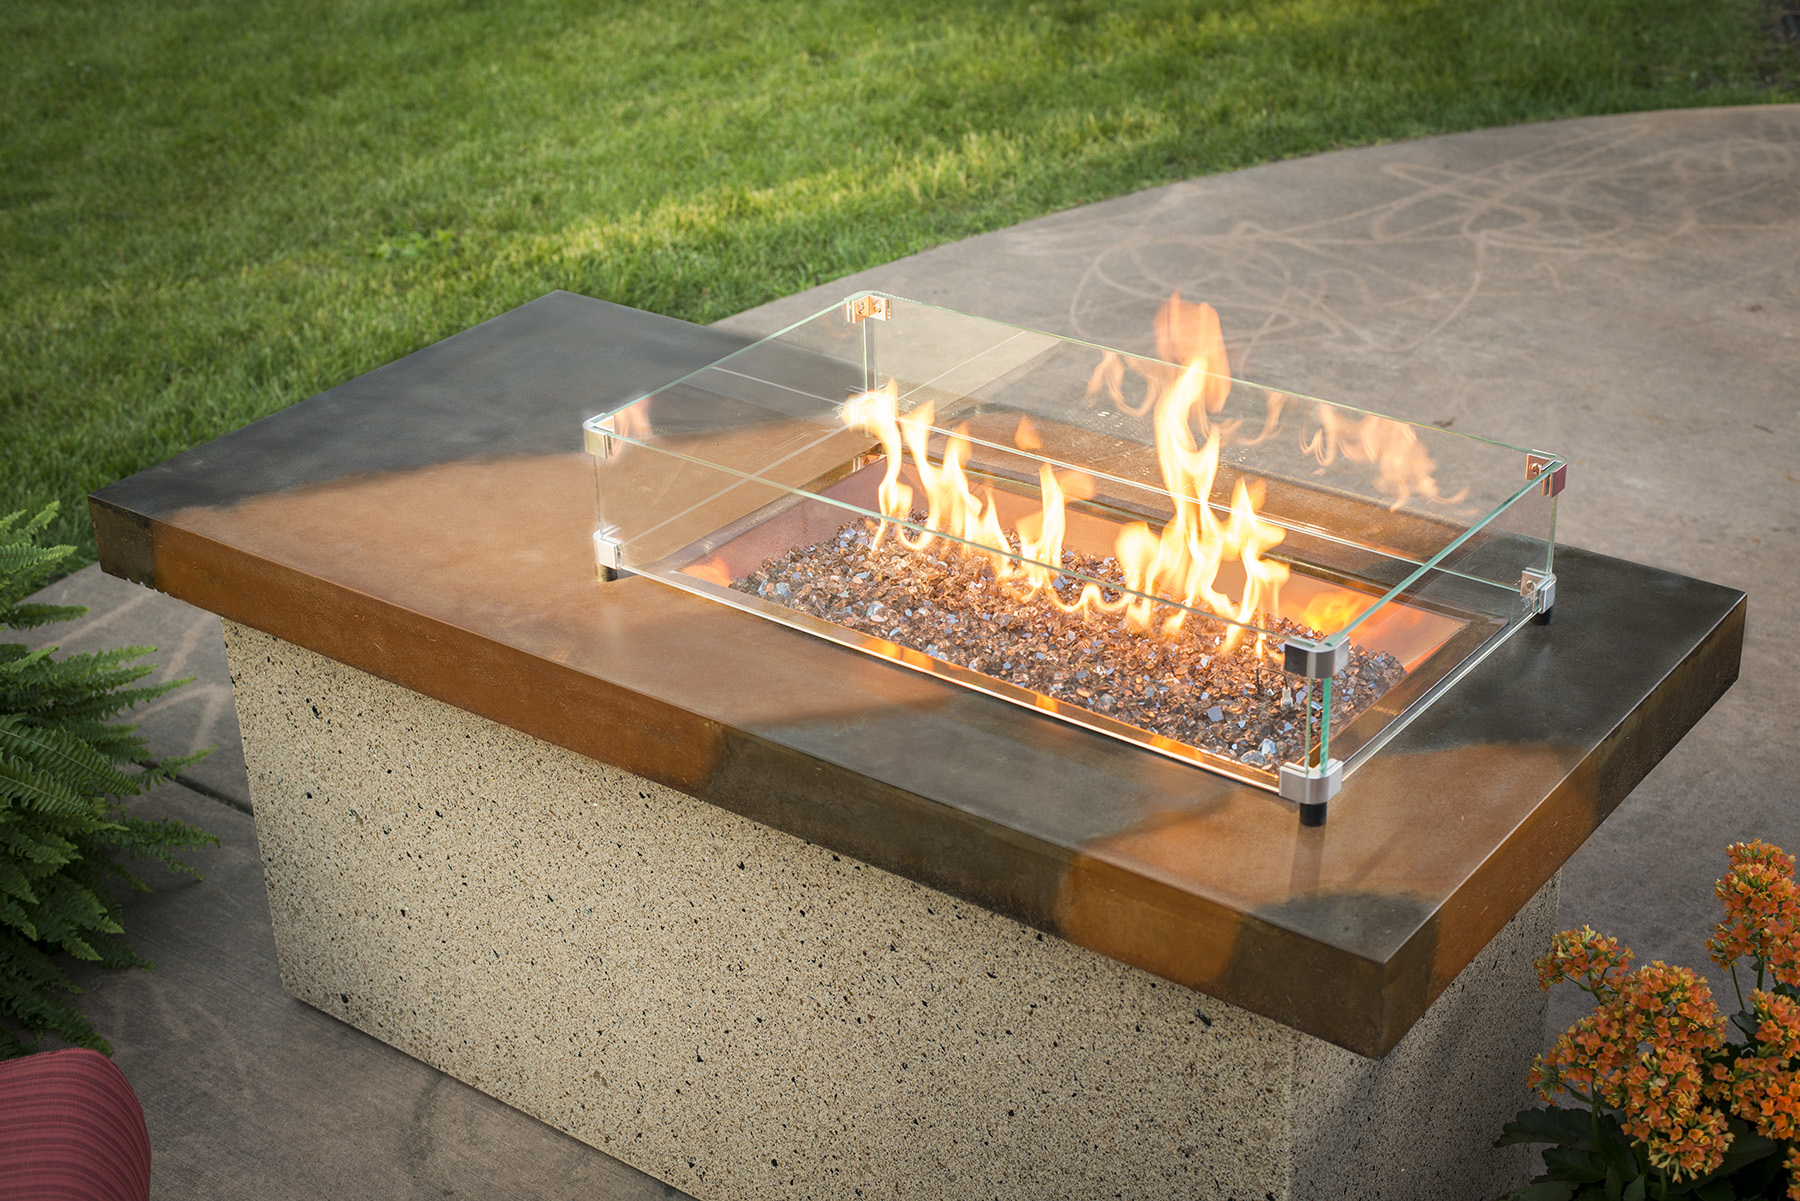 Outdoor GreatRoom ART-1224-BRN-K Artisan Firepit Table with Stainless Steel Burner by Outdoor GreatRoom